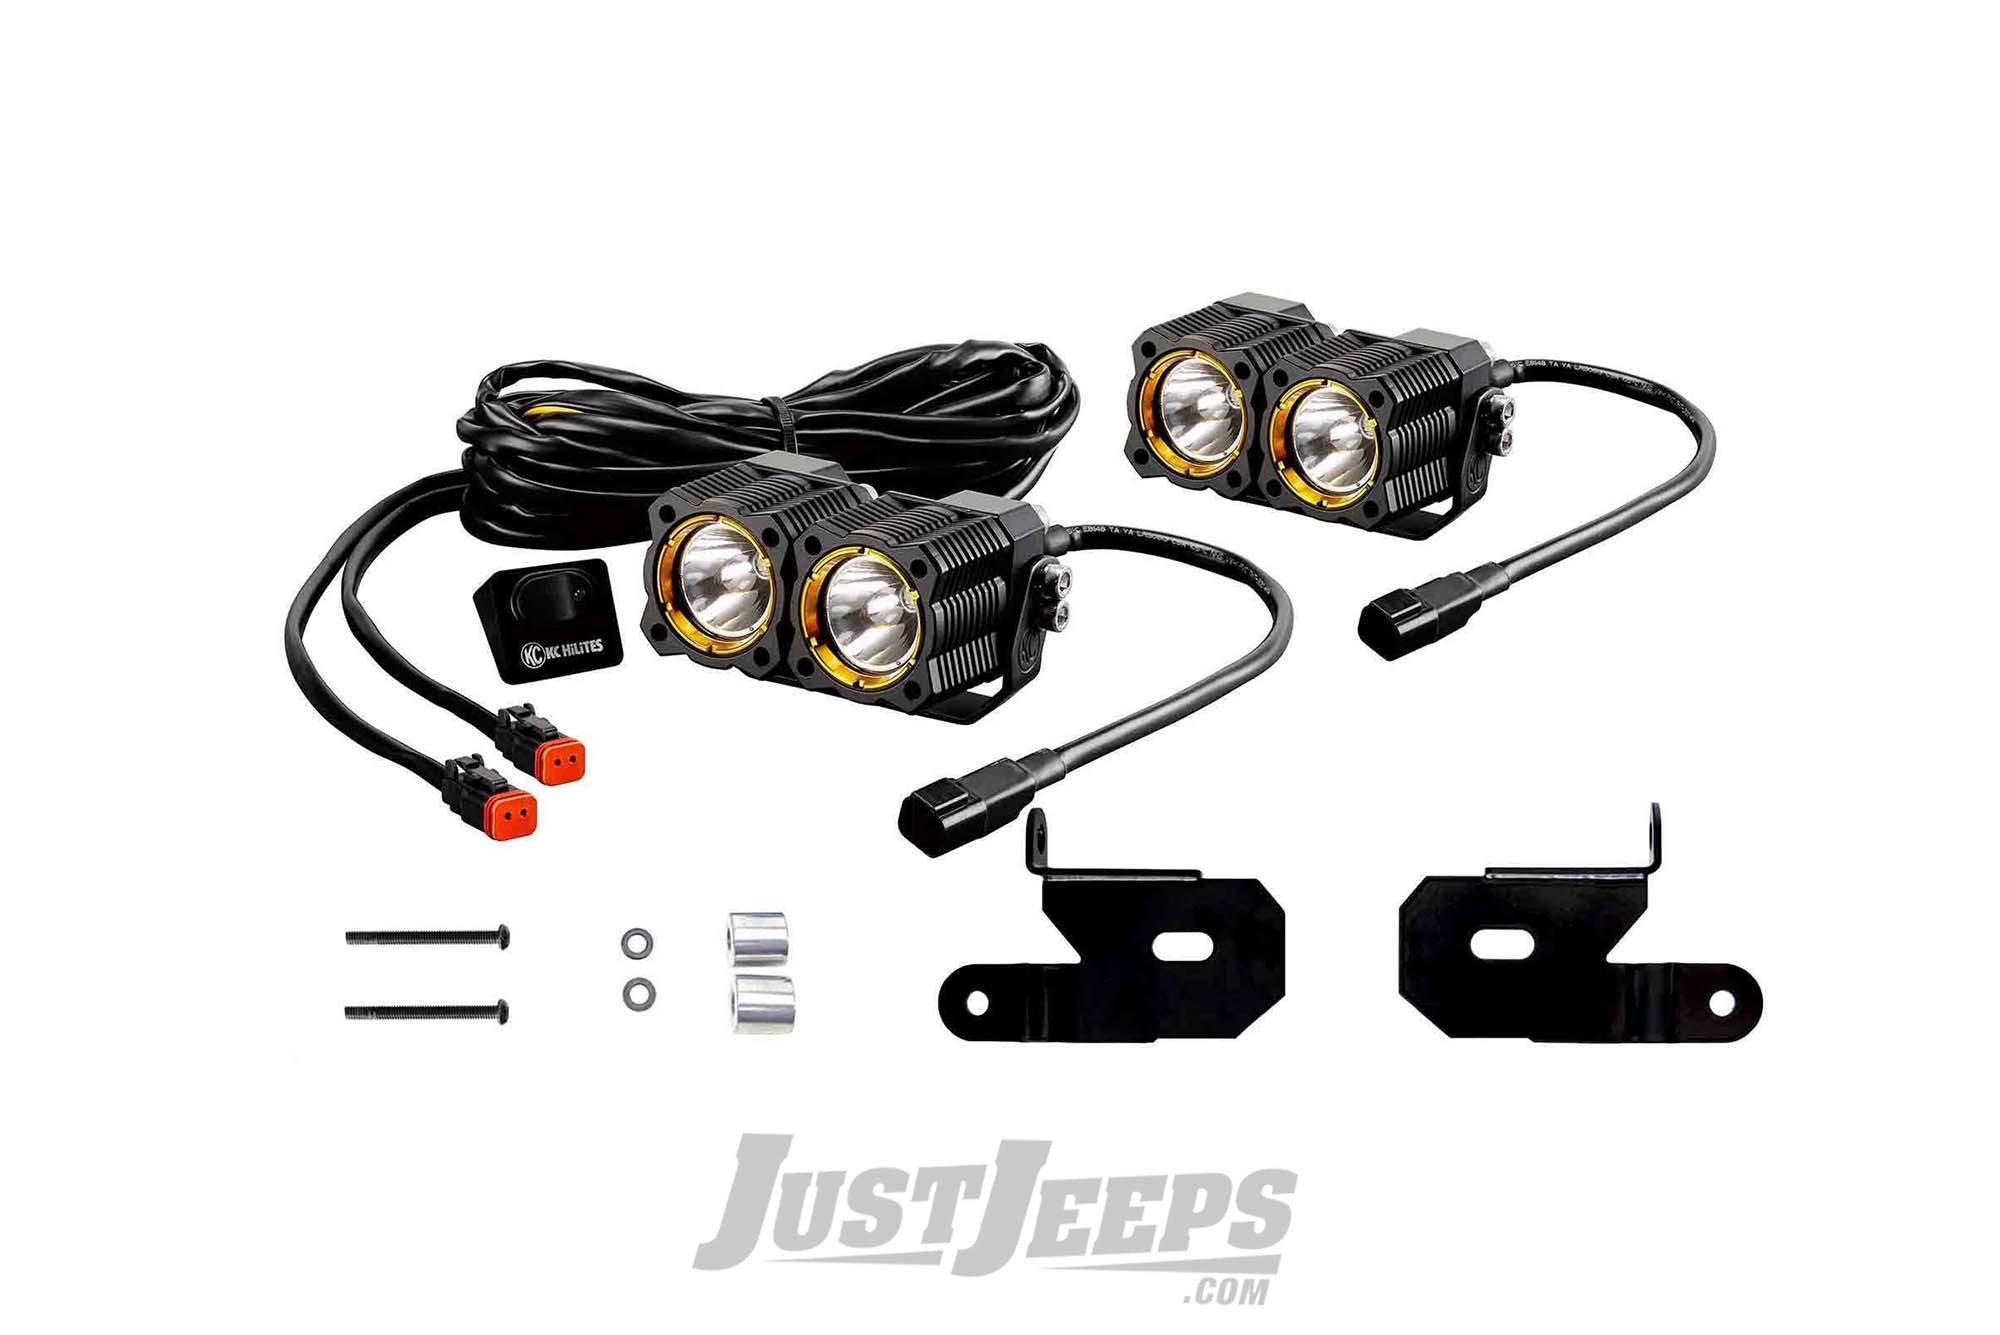 Just Jeeps Kc Hilites Spot Beam Flex Led Dual Led Lights With A Pillar Mount Brackets For